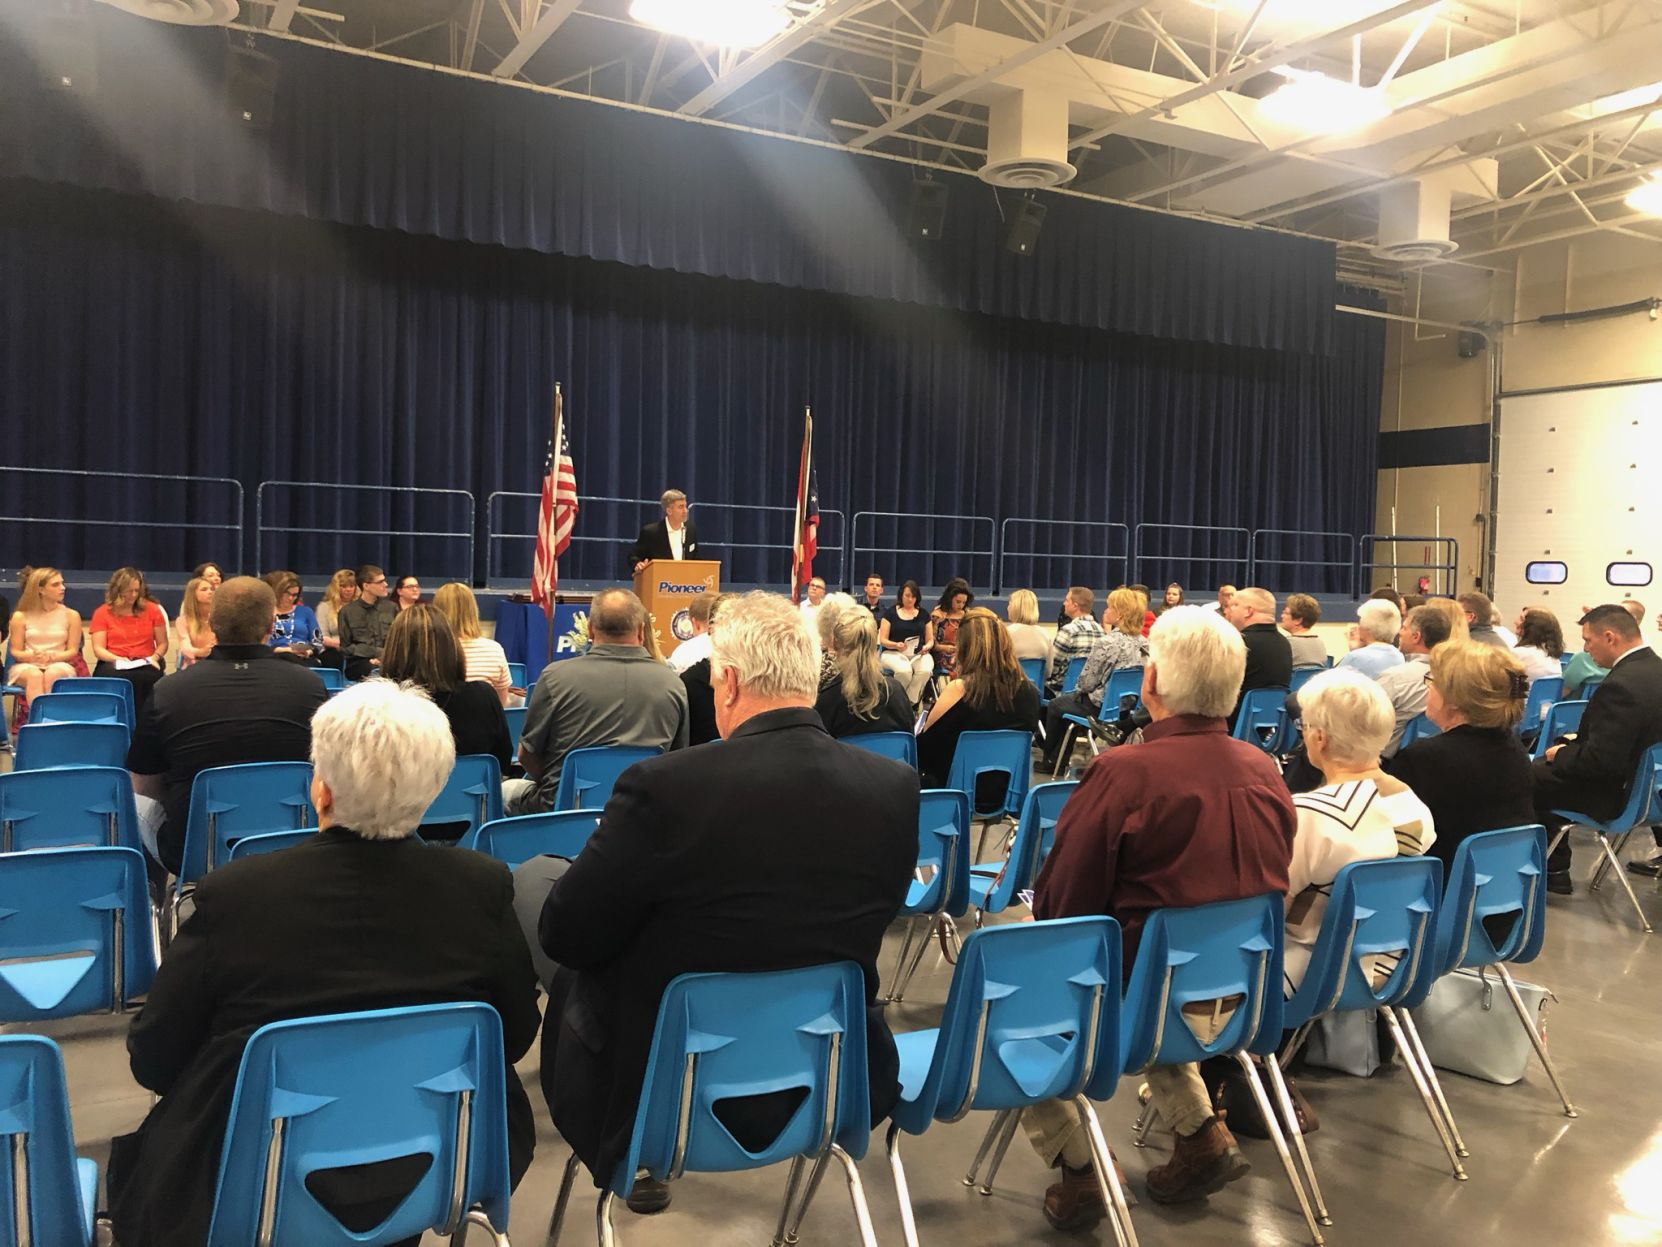 B.E.S.T. Awards honor Crawford County Students and Teachers at Pioneer Career and Technology Center